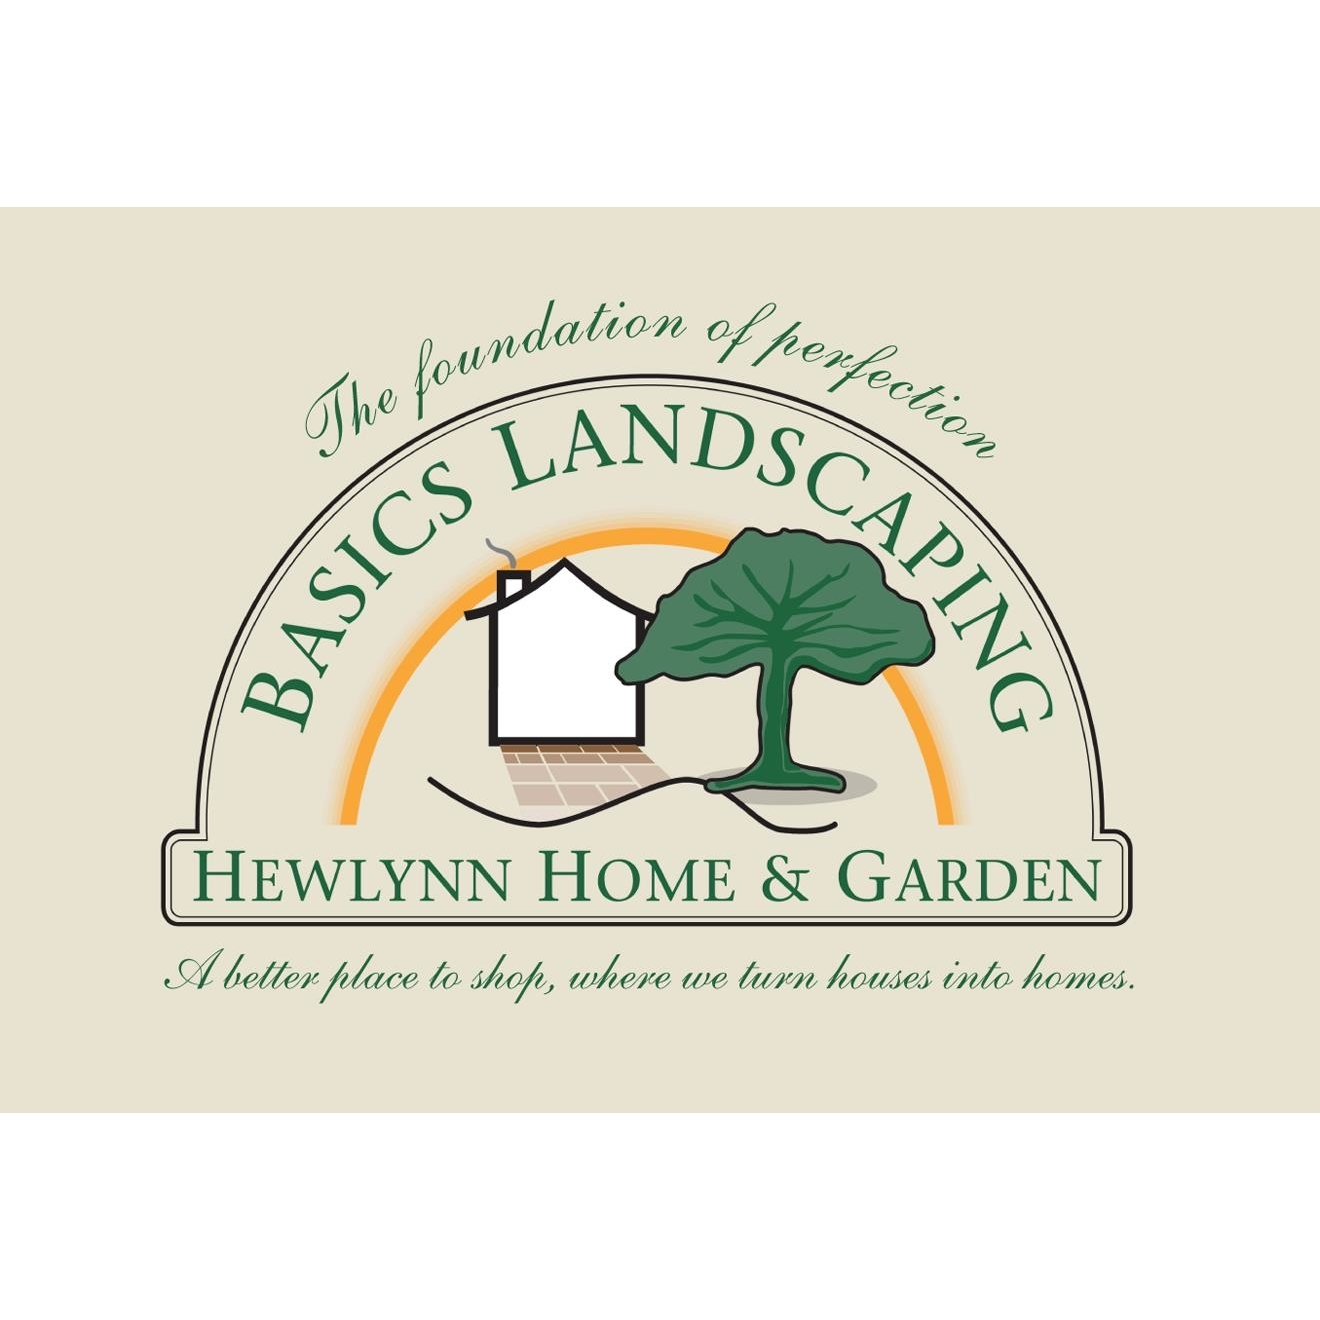 Basics Landscaping Co., Inc.